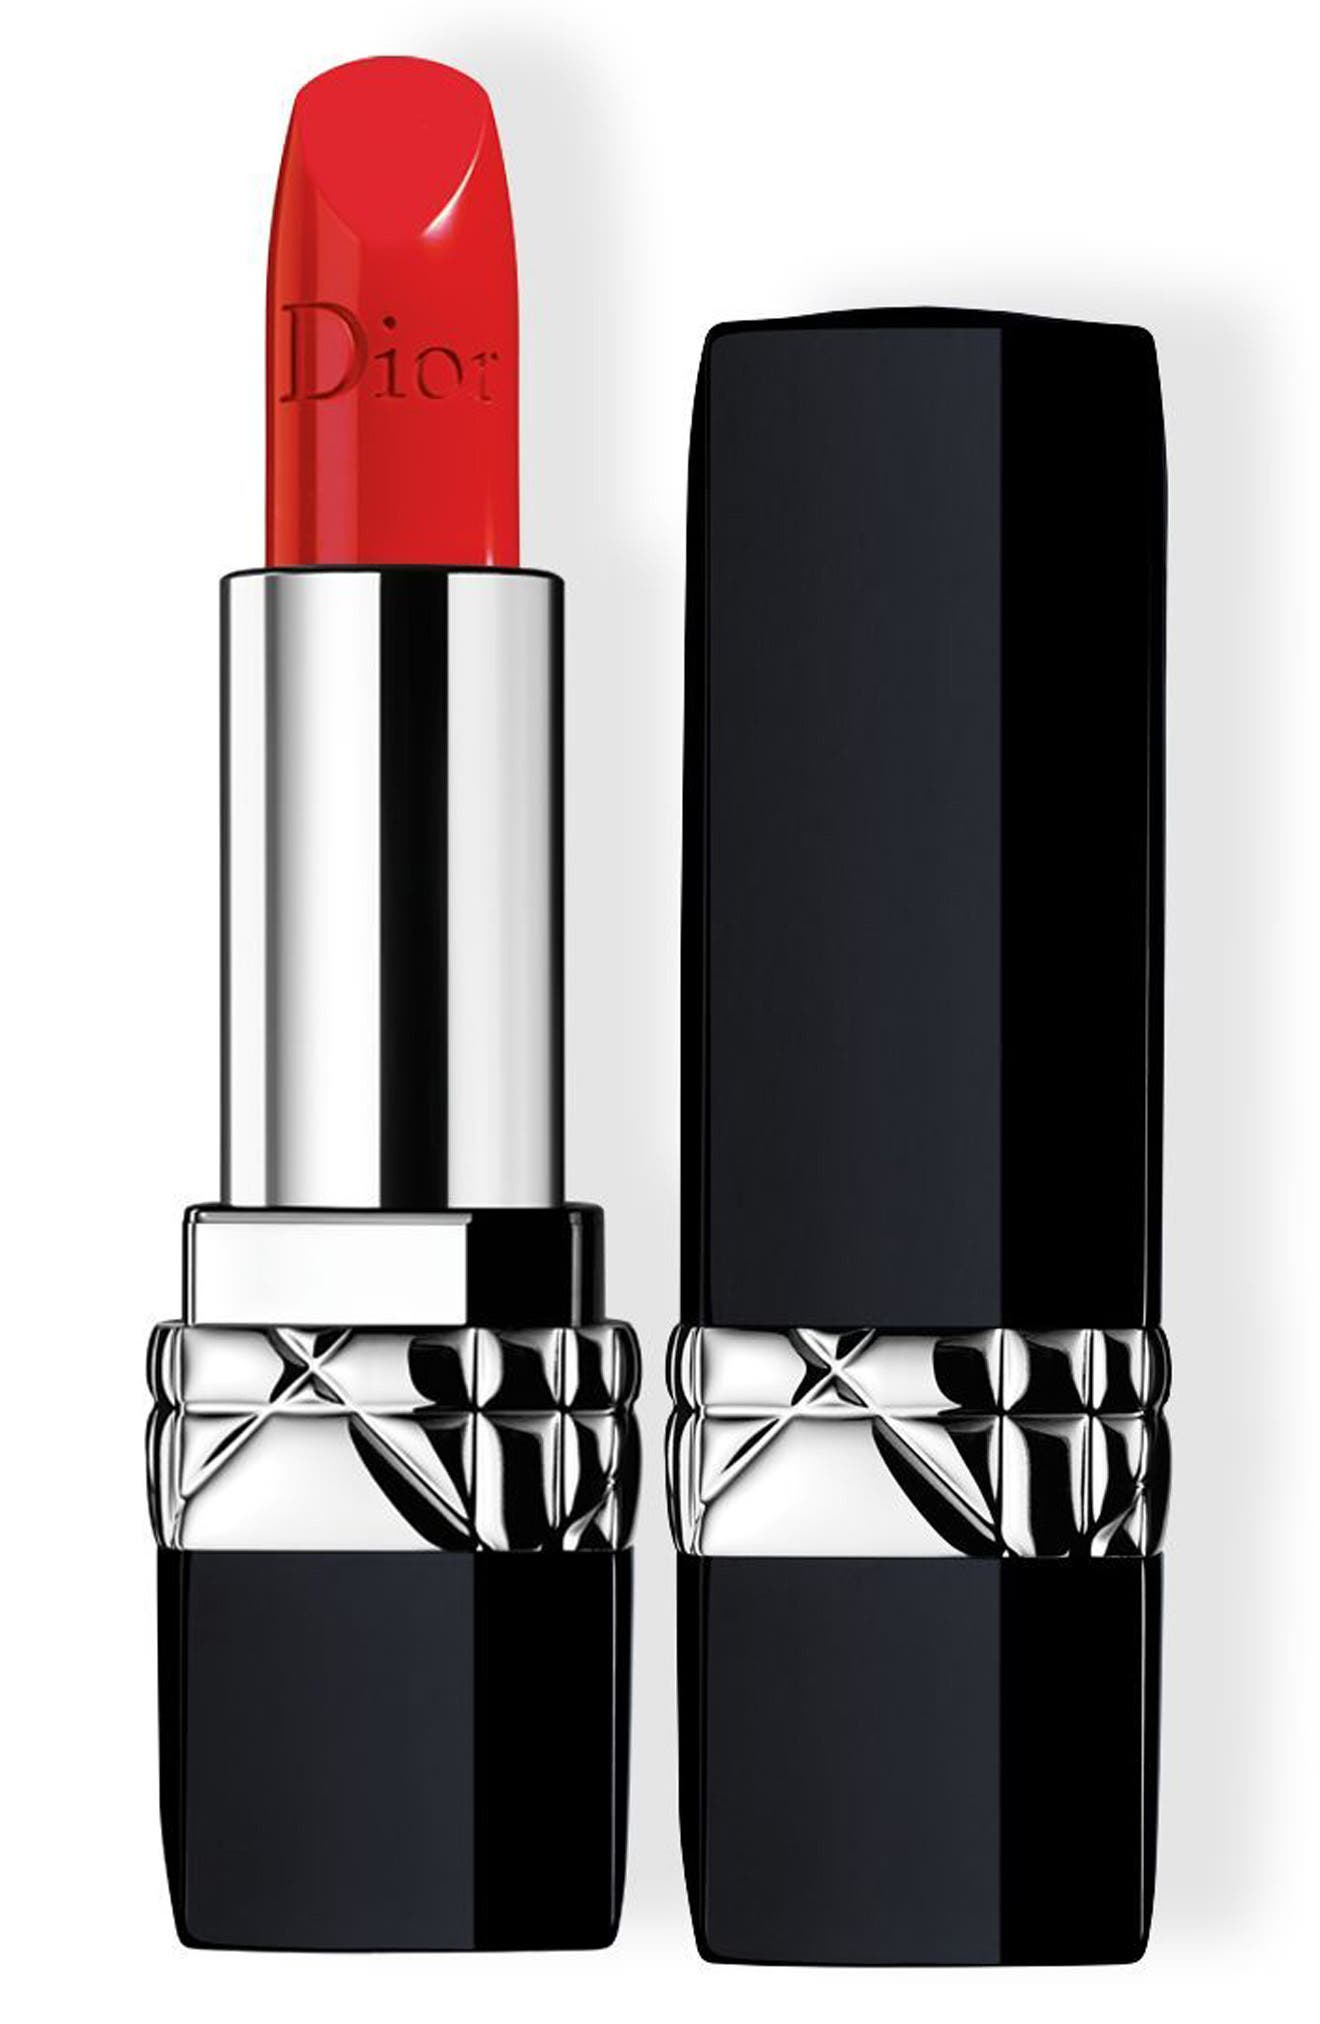 Dior Couture Color Rouge Dior Lipstick - 844 Trafalgar